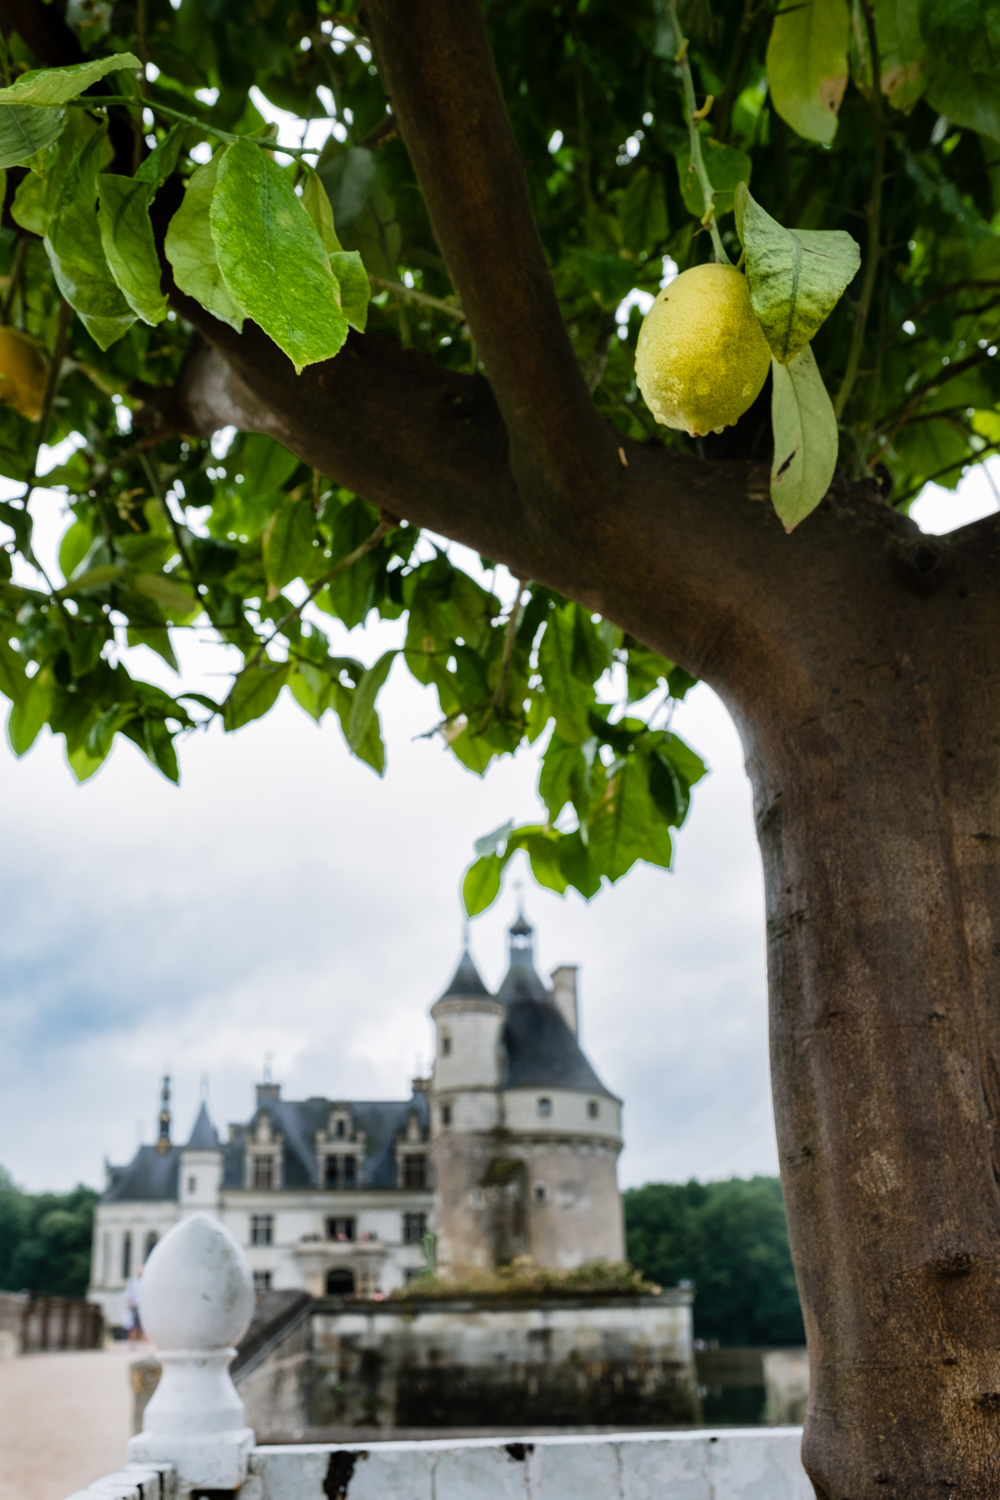 A lemon tree in front of Chaumont